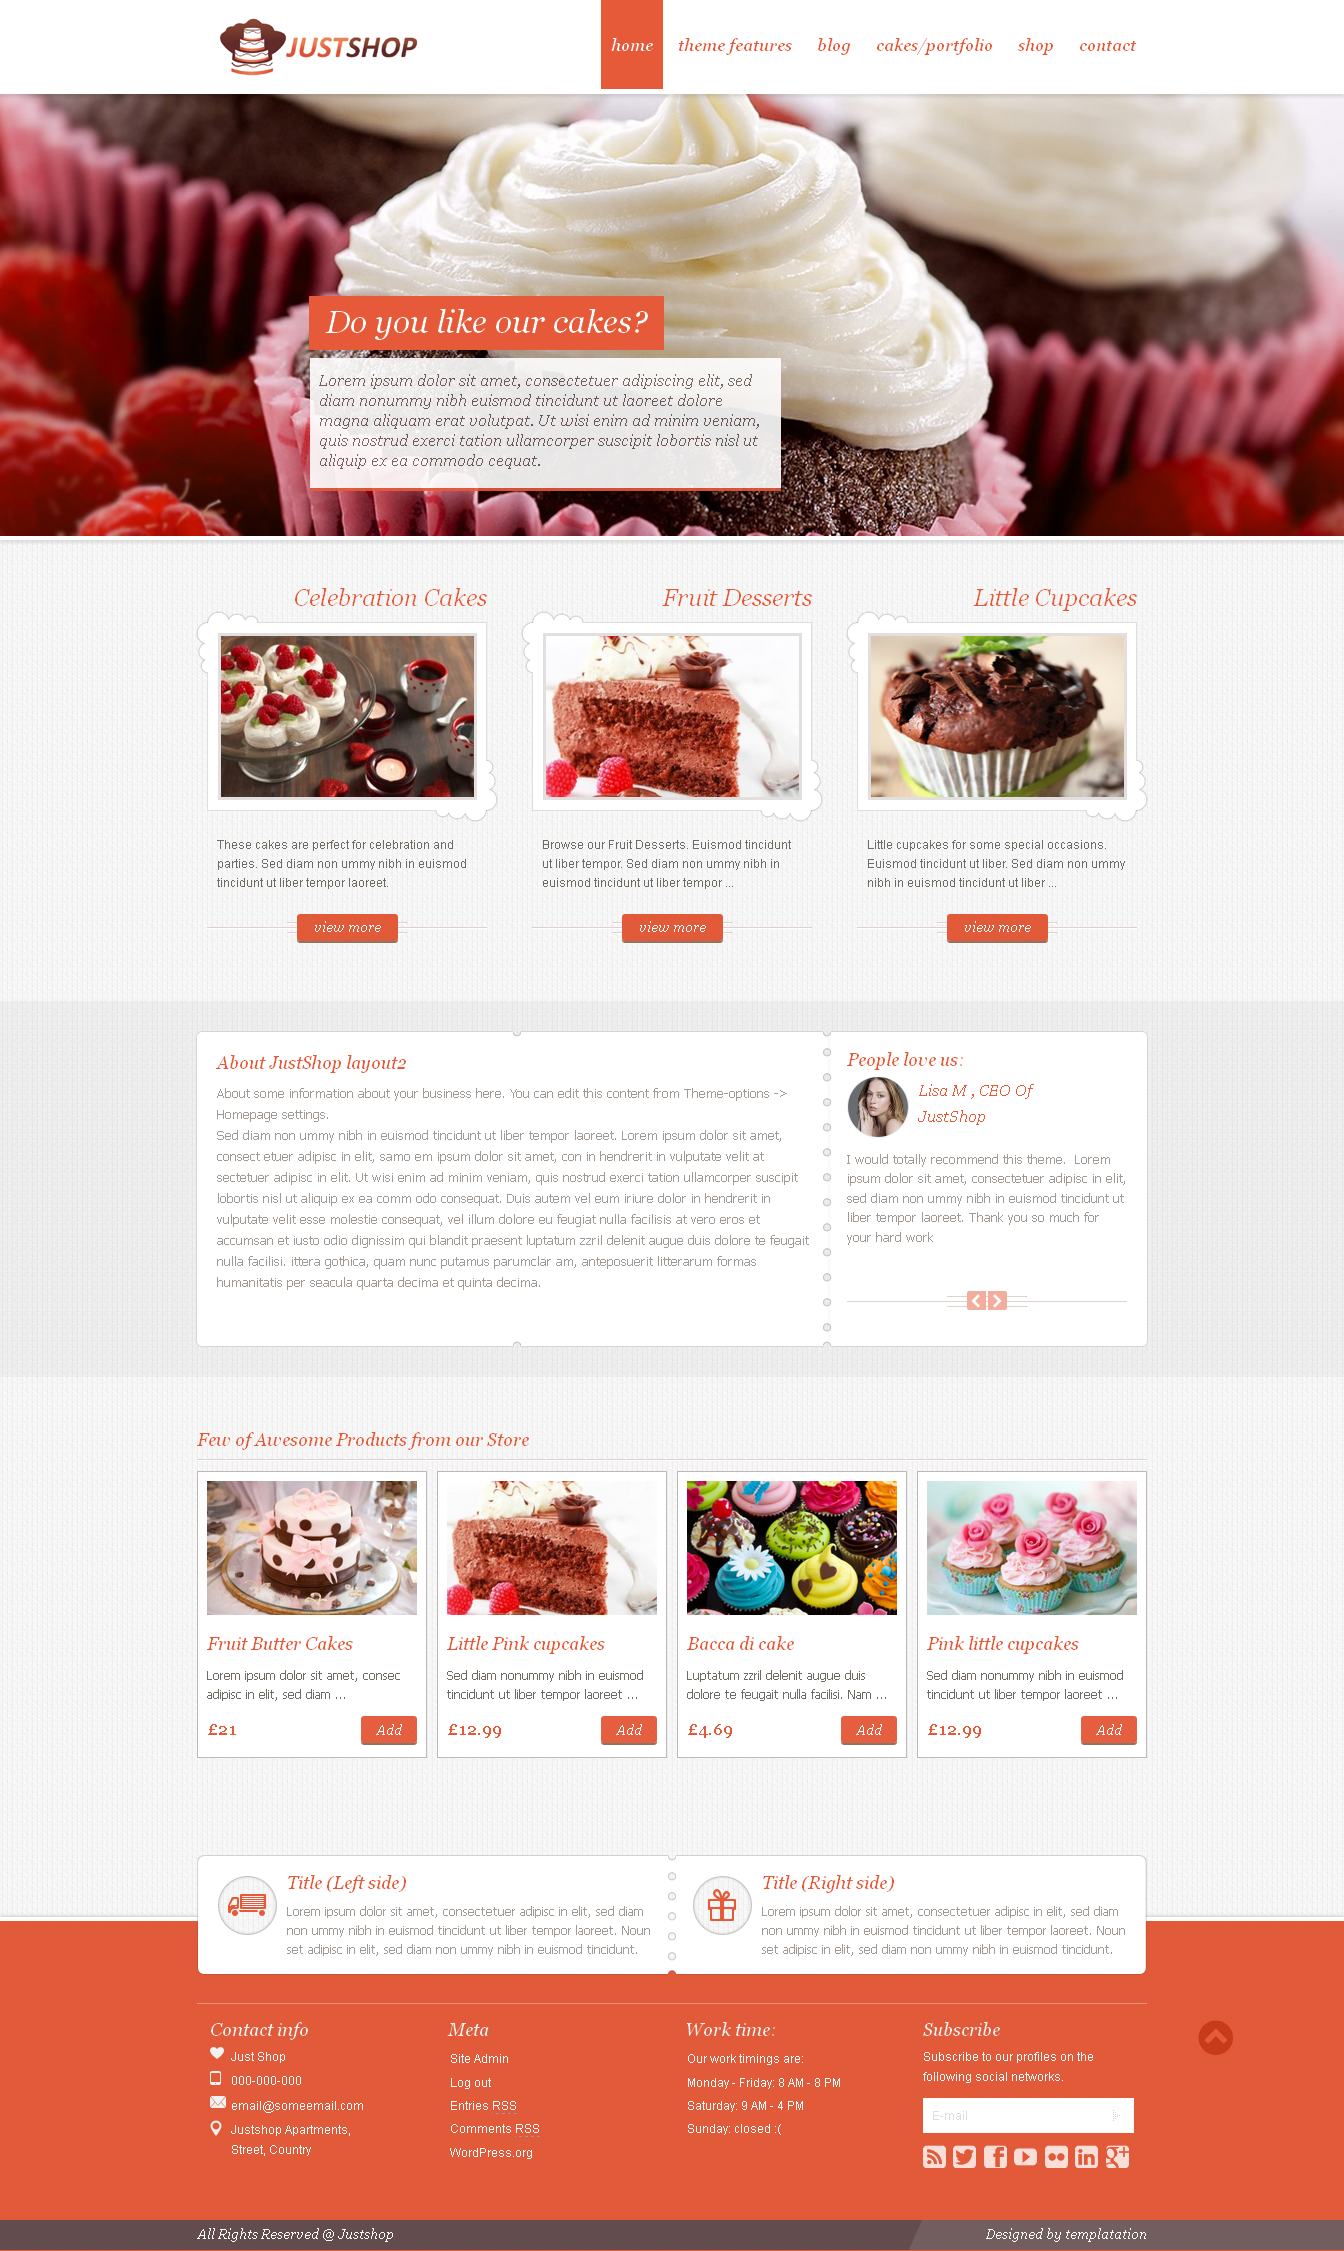 Justshop Cake Bakery WordPress Theme - Download theme here : http://themeforest.net/item/justshop-cake-bakery-wordpress-theme/4747148?ref=pxcr